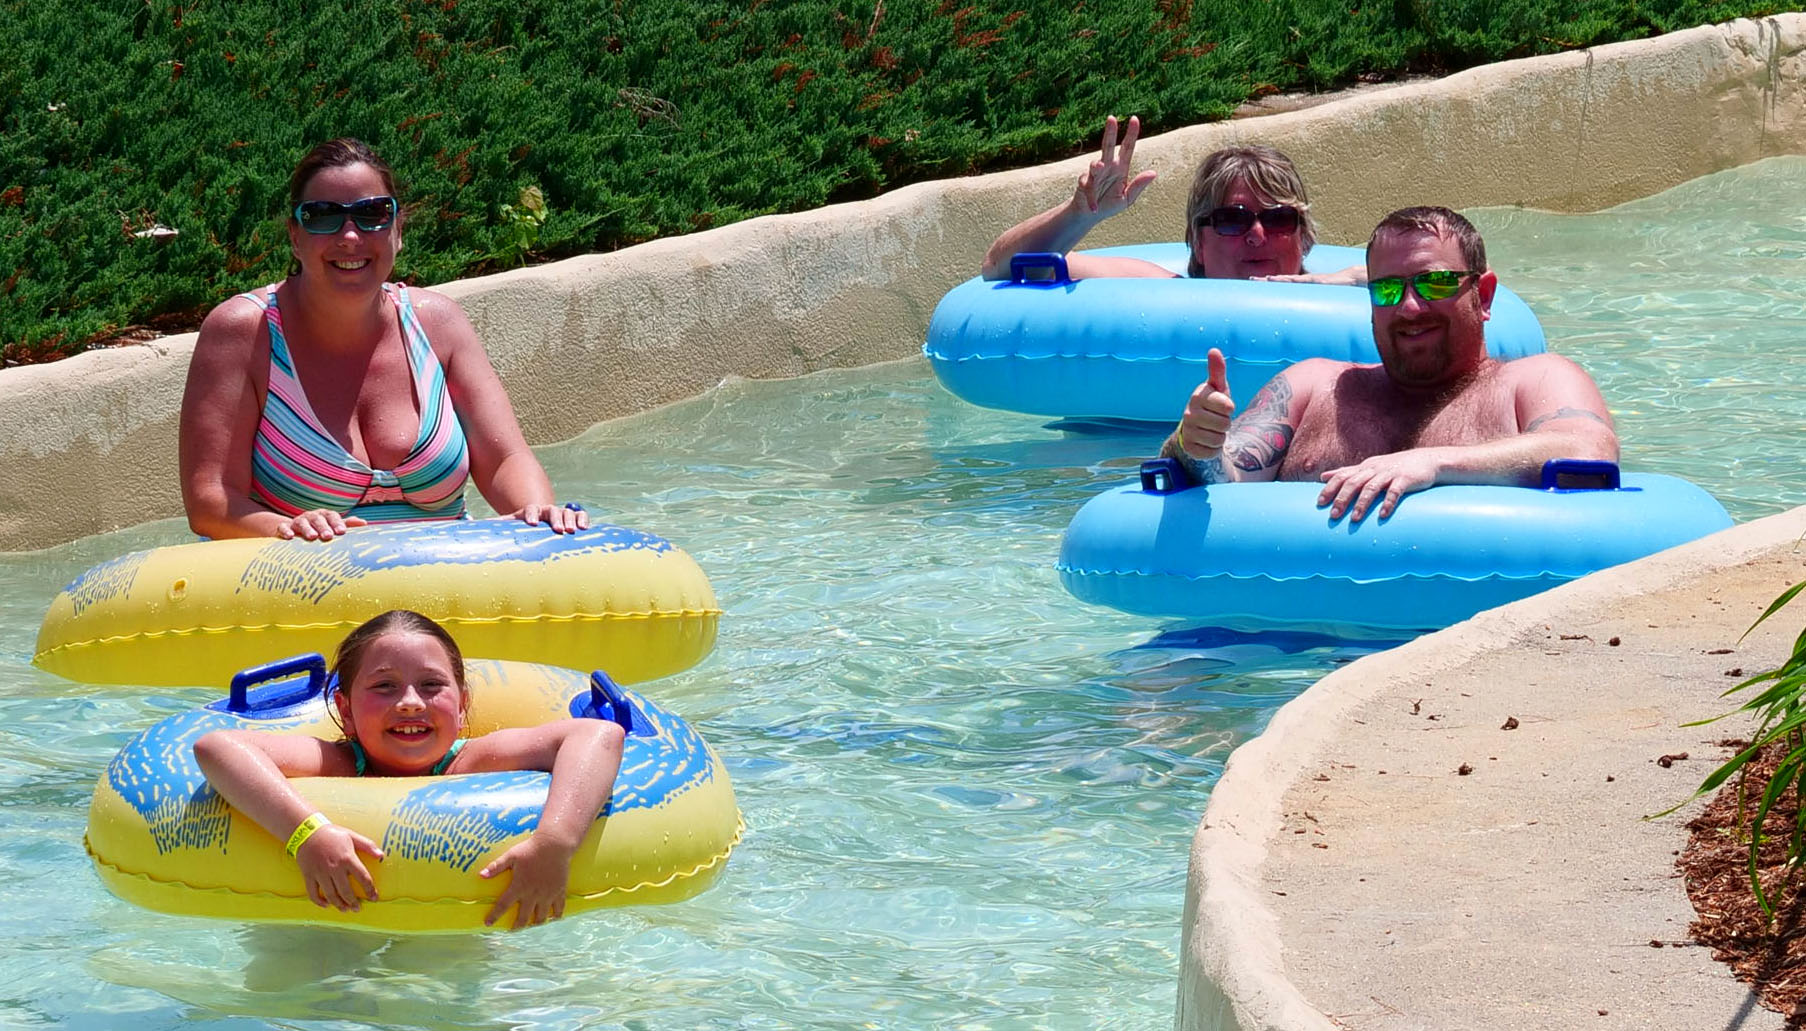 Thumbs up to the Lazy River